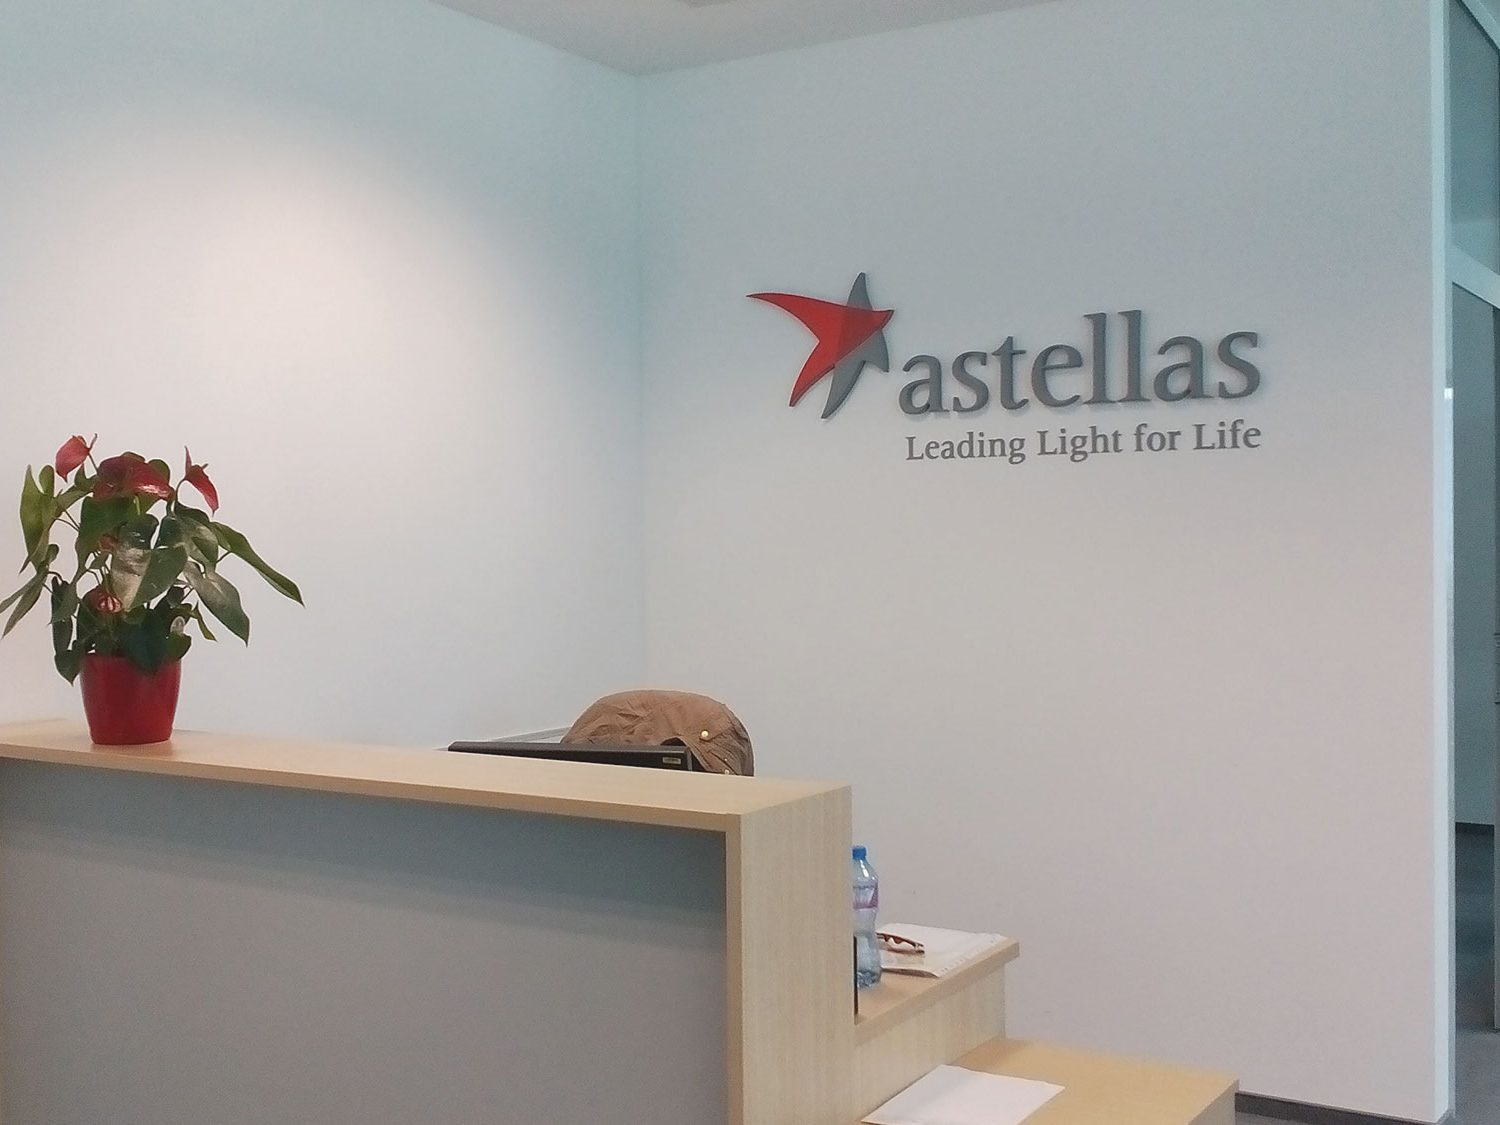 Astellas logo on the wall behind the reception desk